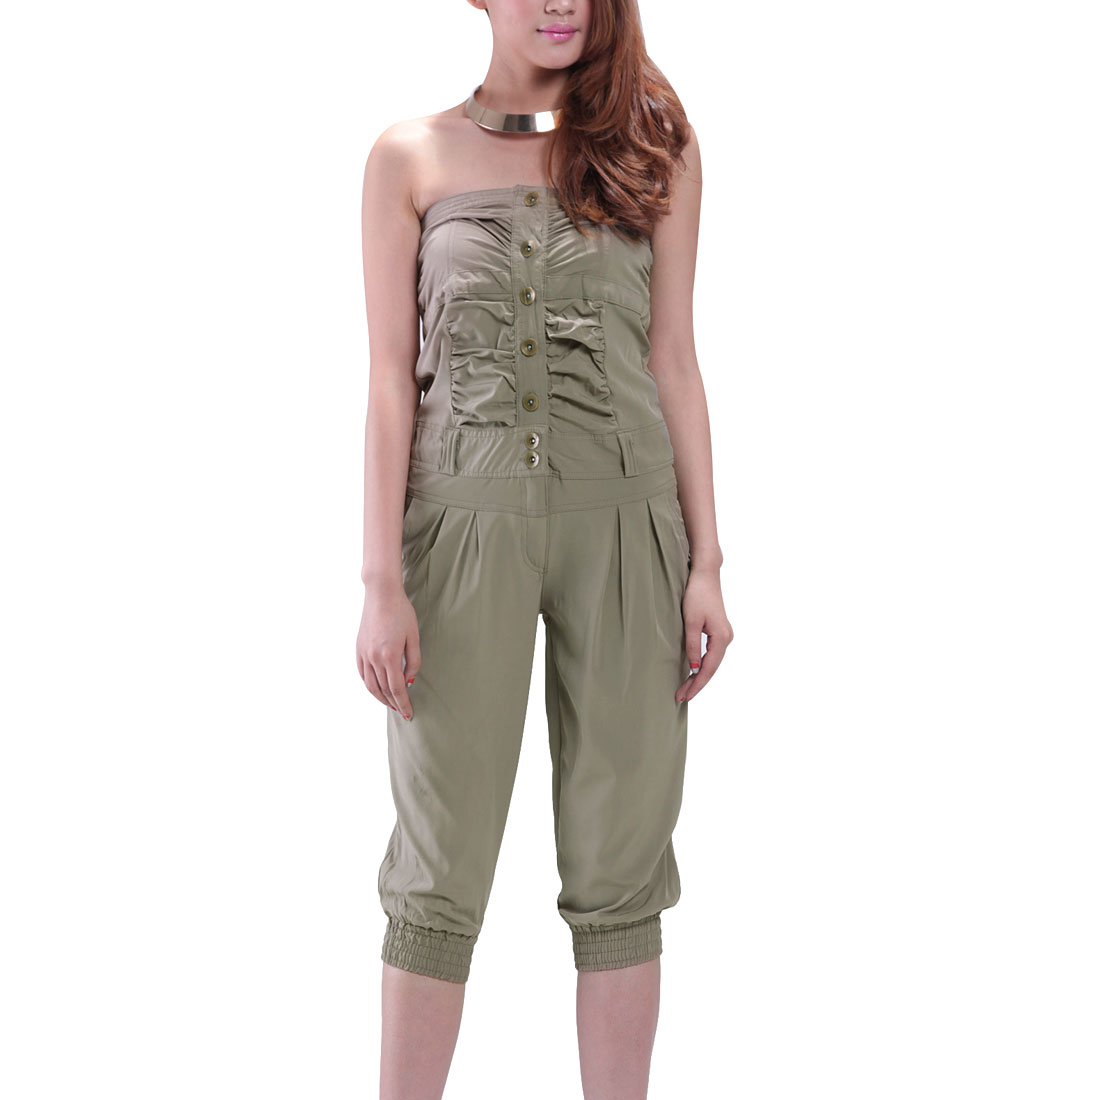 Casual Single Breasted Smocked Back Tube Cropped Jumpsuit Khaki XS for Women